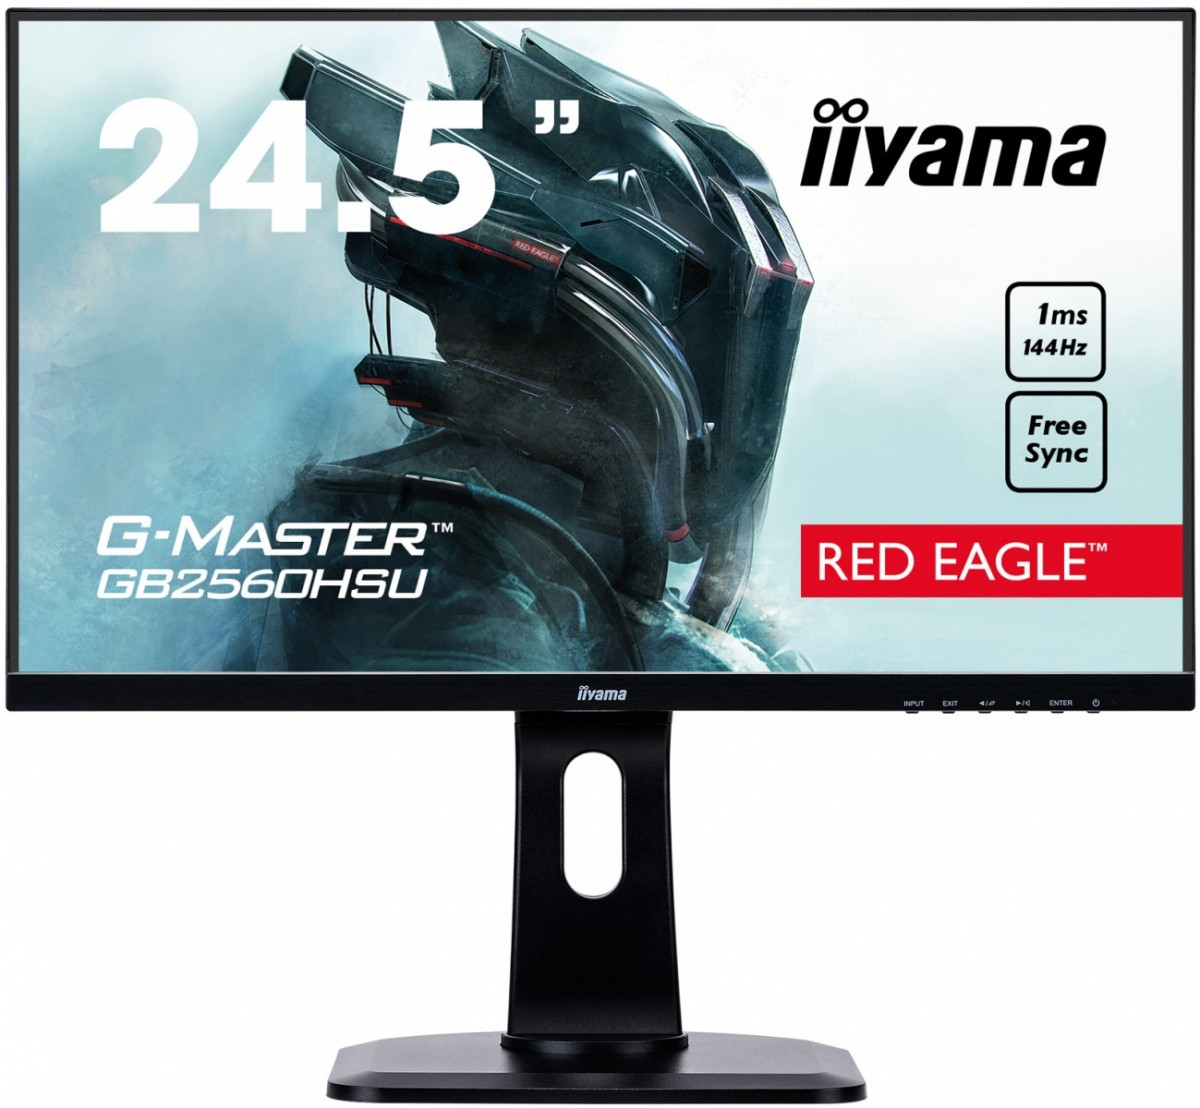 Monitor 24.5 GB2560HSU-B1 1MS,144Hz,HDMI,DP,USB,PIVOT,FLICKER FREE